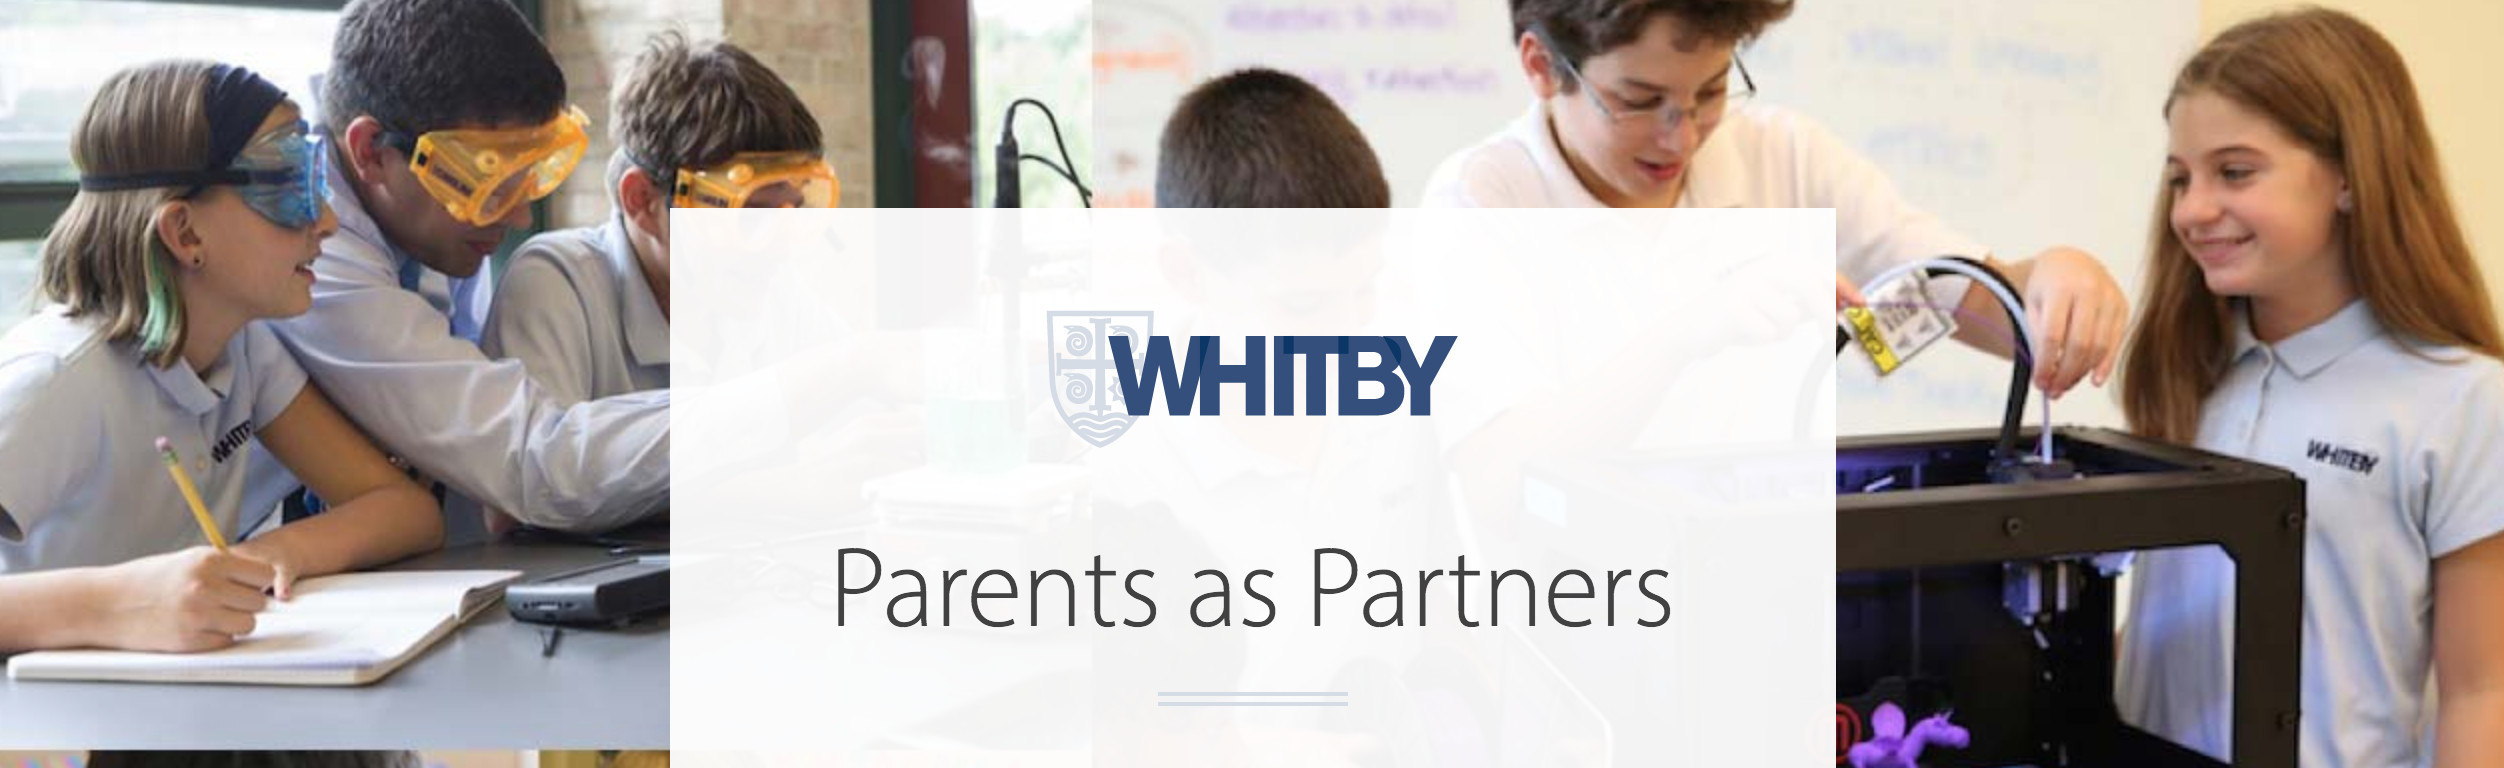 Managing Sibling Rivalry - Lenore Dweck, Presented by Whitby School